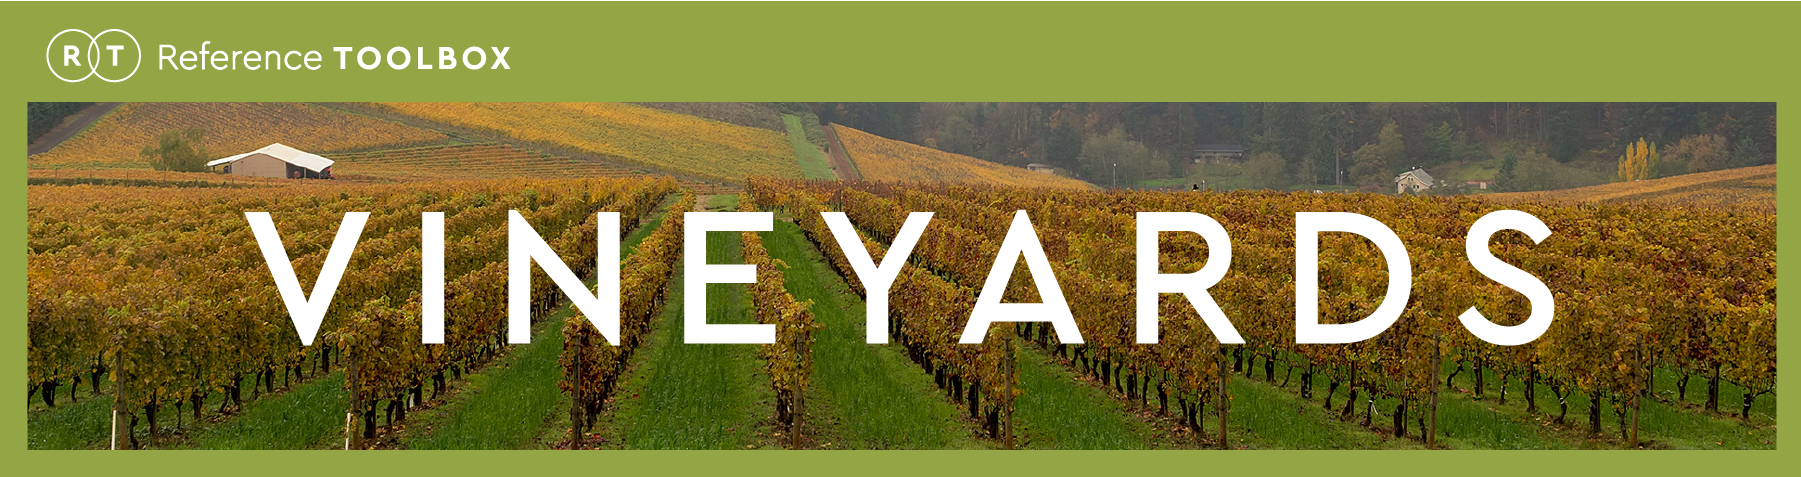 Oregon Winegrower's Association - Resource Toolbox - Vineyards